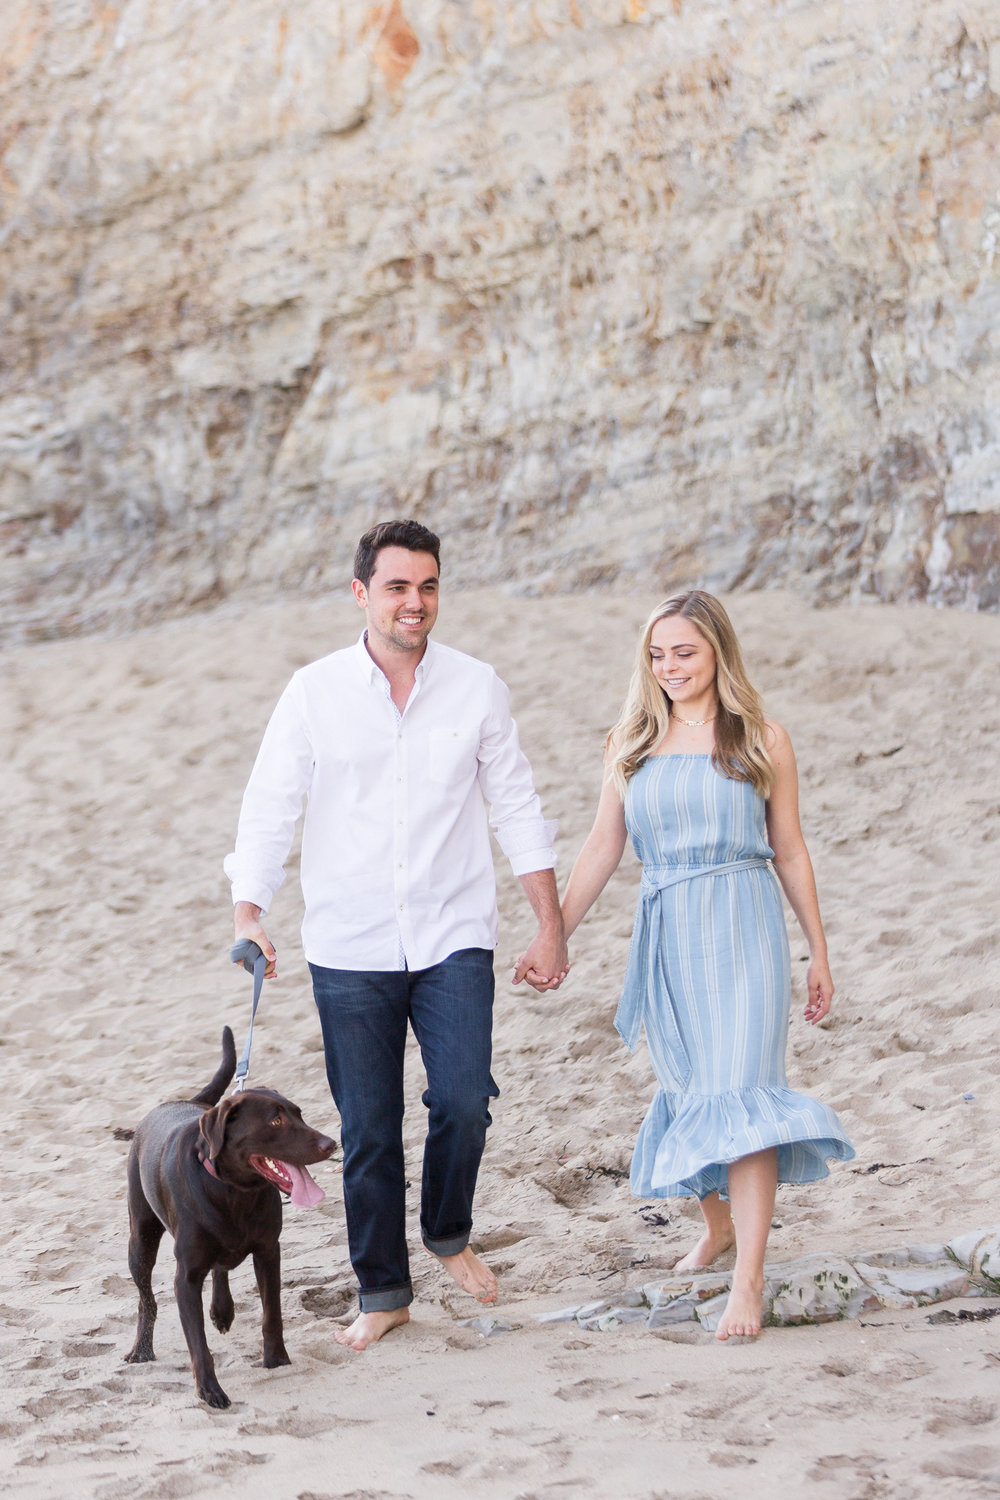 panther-beach-santa-cruz-engagement-session-photographer-2.jpg